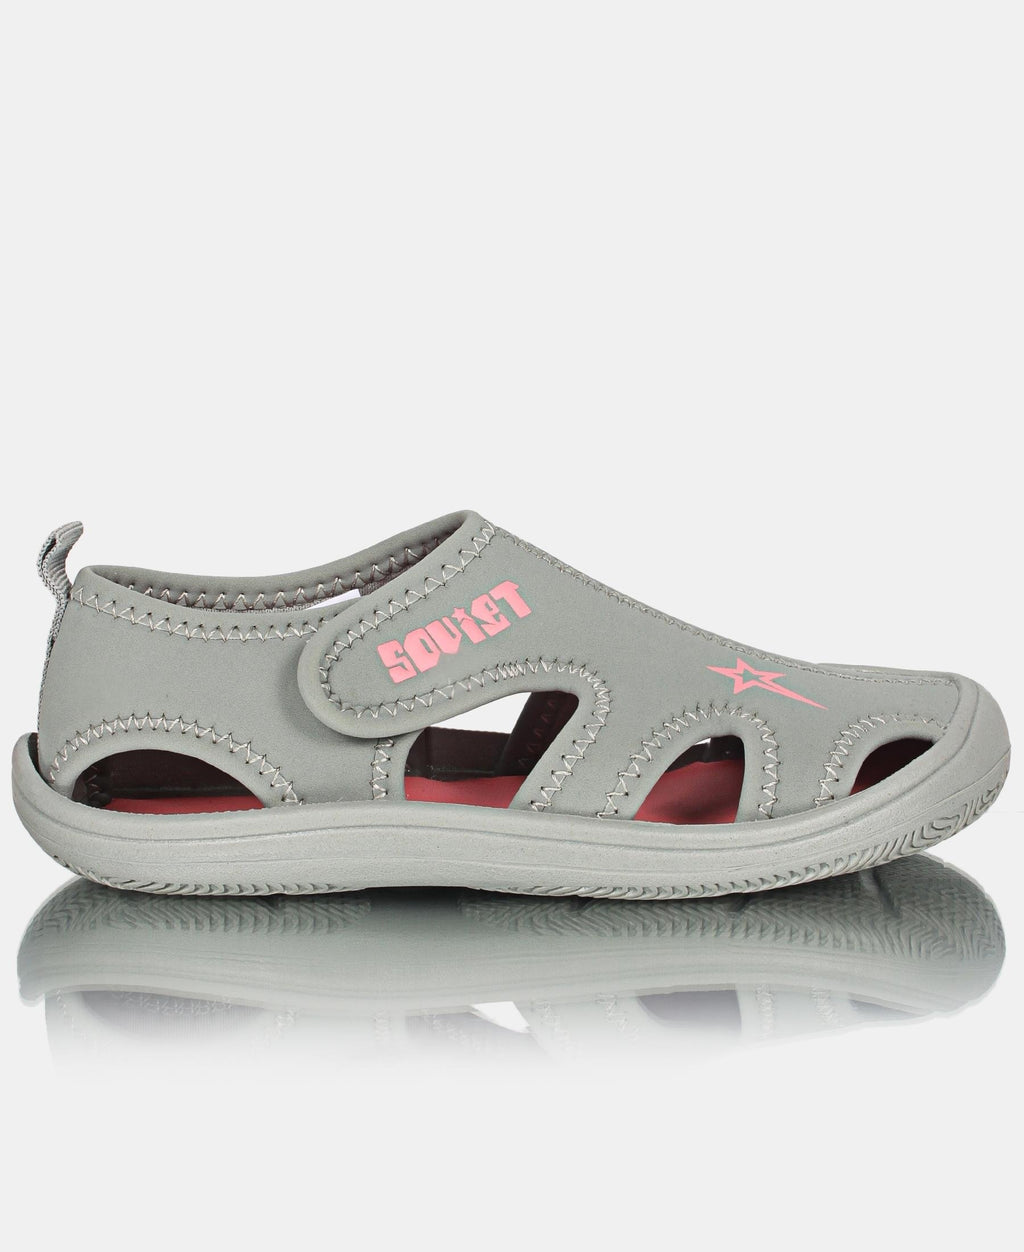 Kids Ramba Sandals - Light Grey